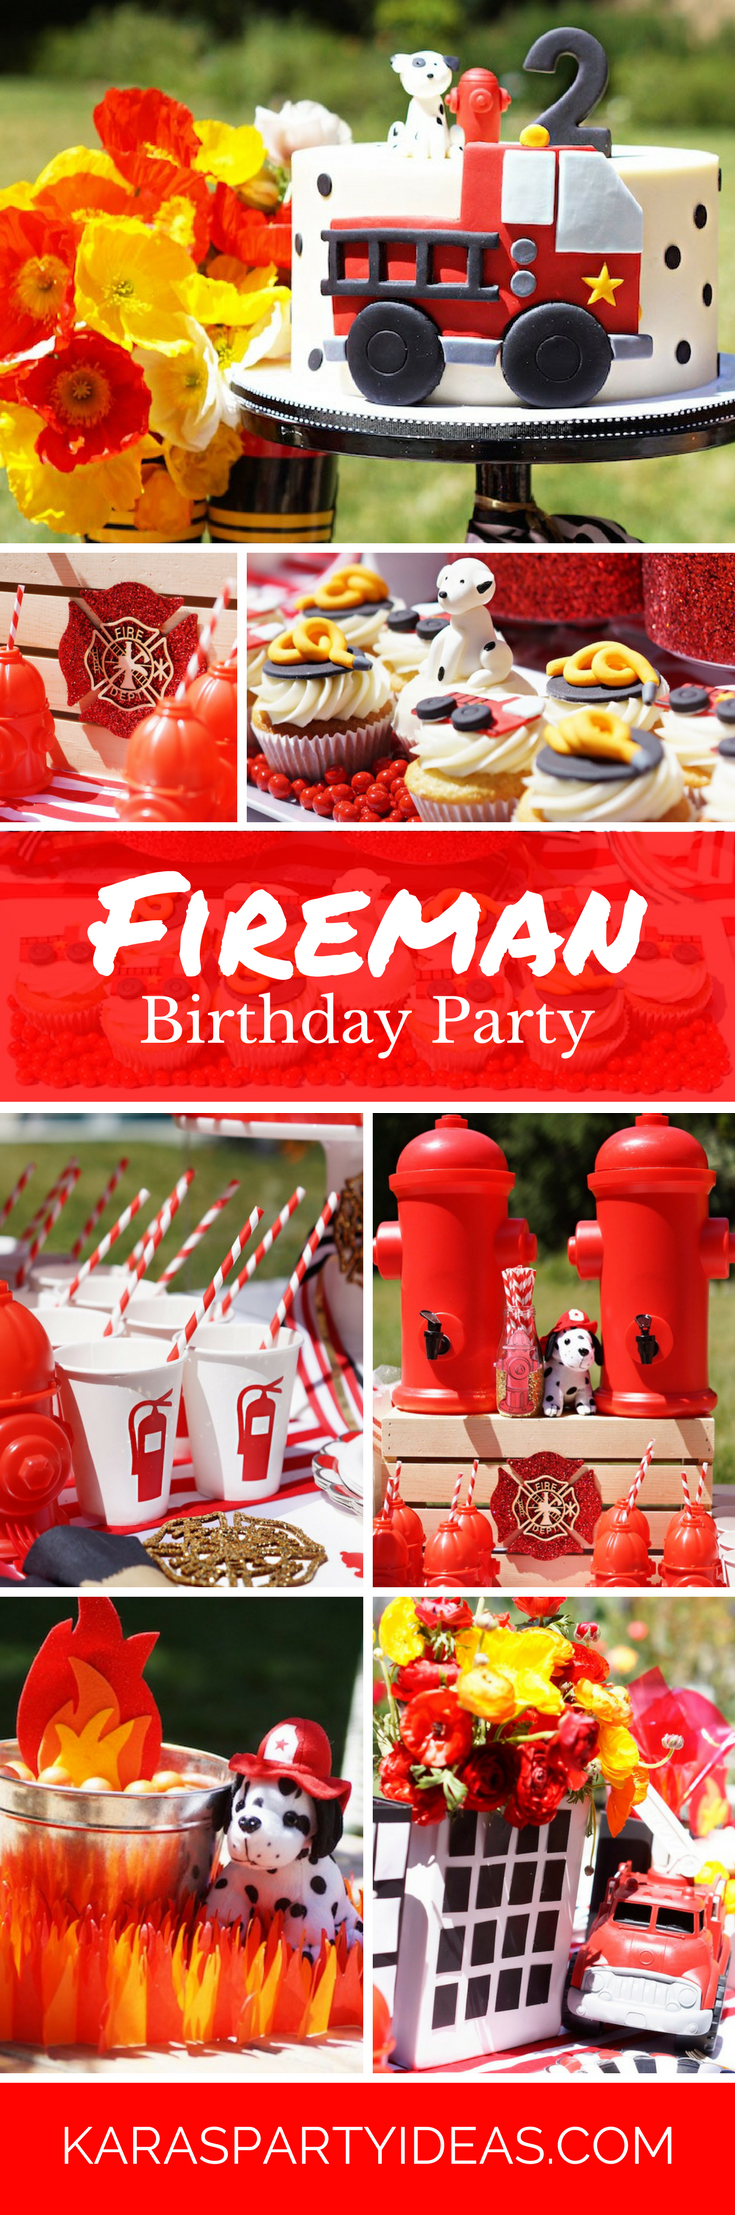 Fireman Birthday Party via Kara's Party Ideas - KarasPartyIdeas.com